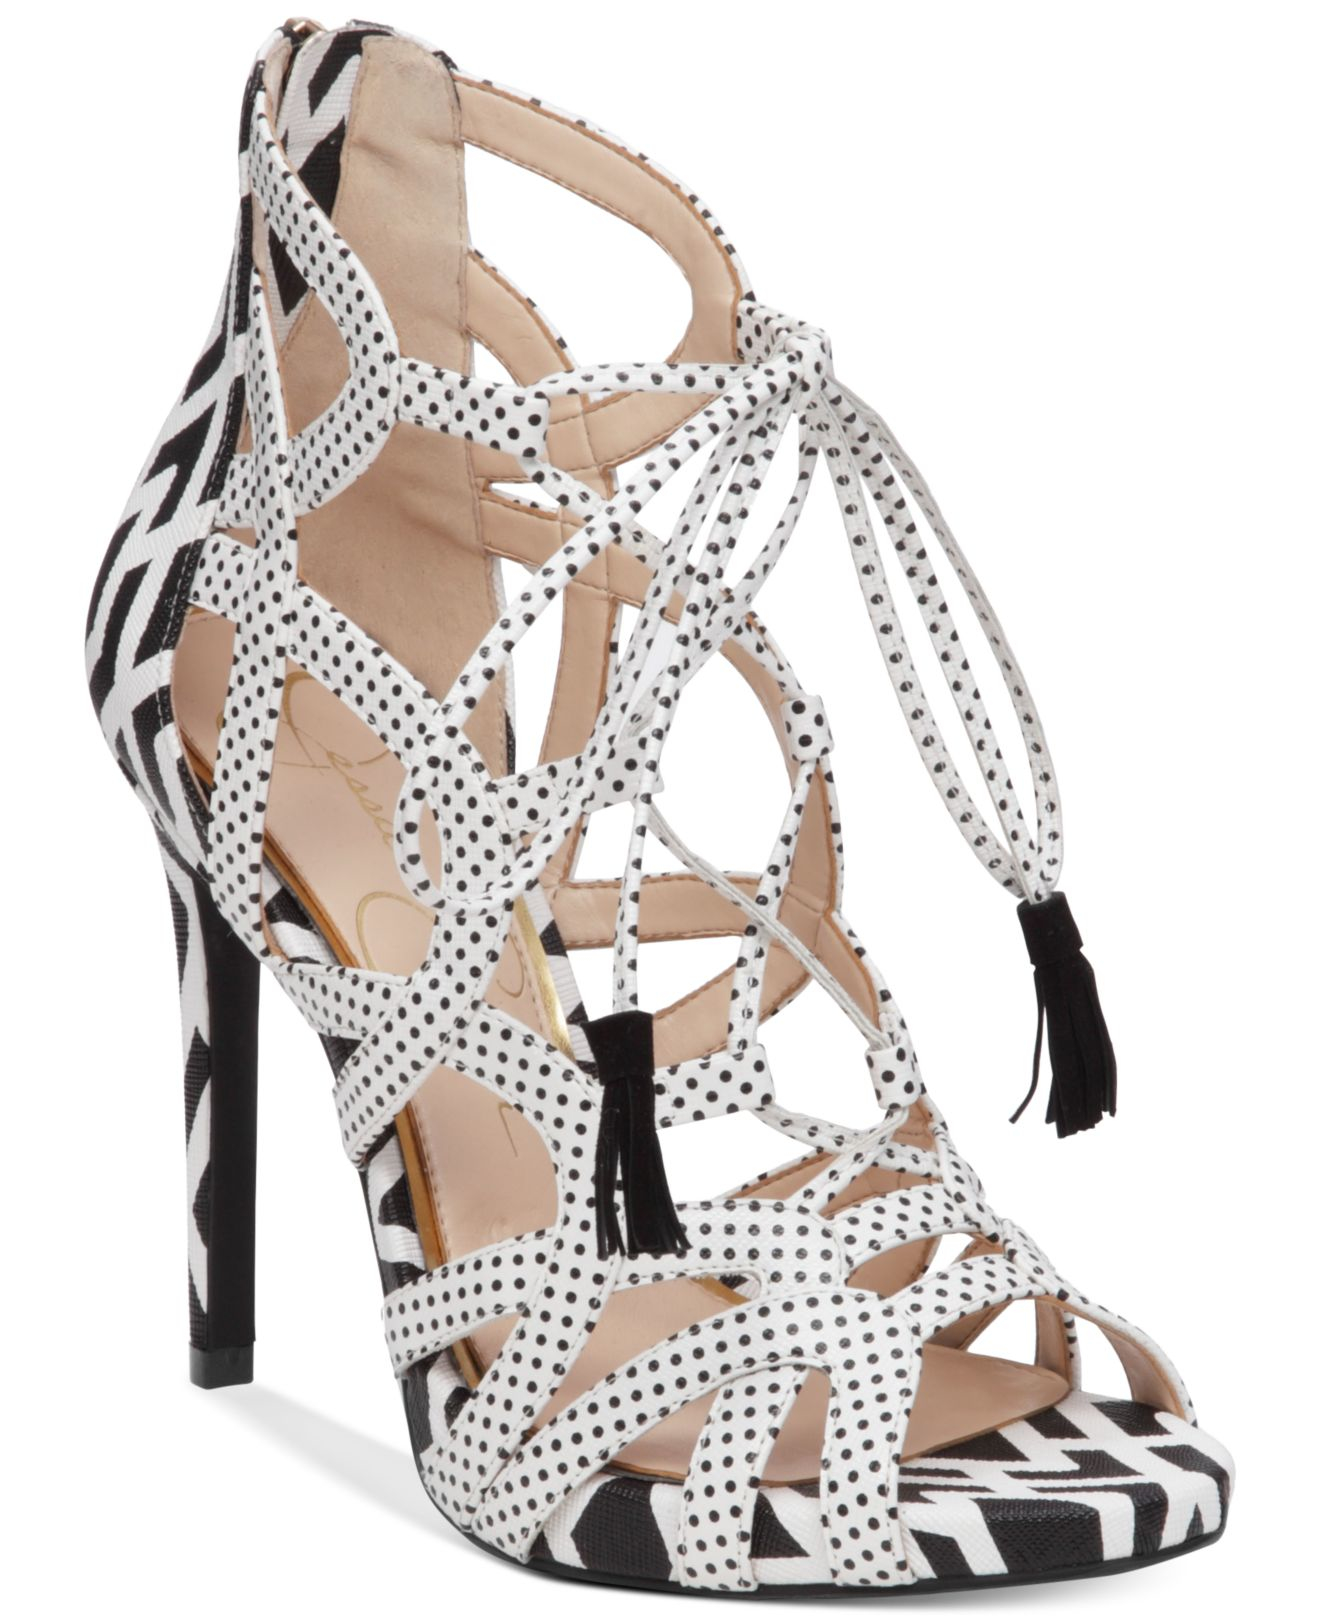 d454a81e41d Lyst - Jessica Simpson Racine Lace-up High-heel Gladiator Sandals in ...